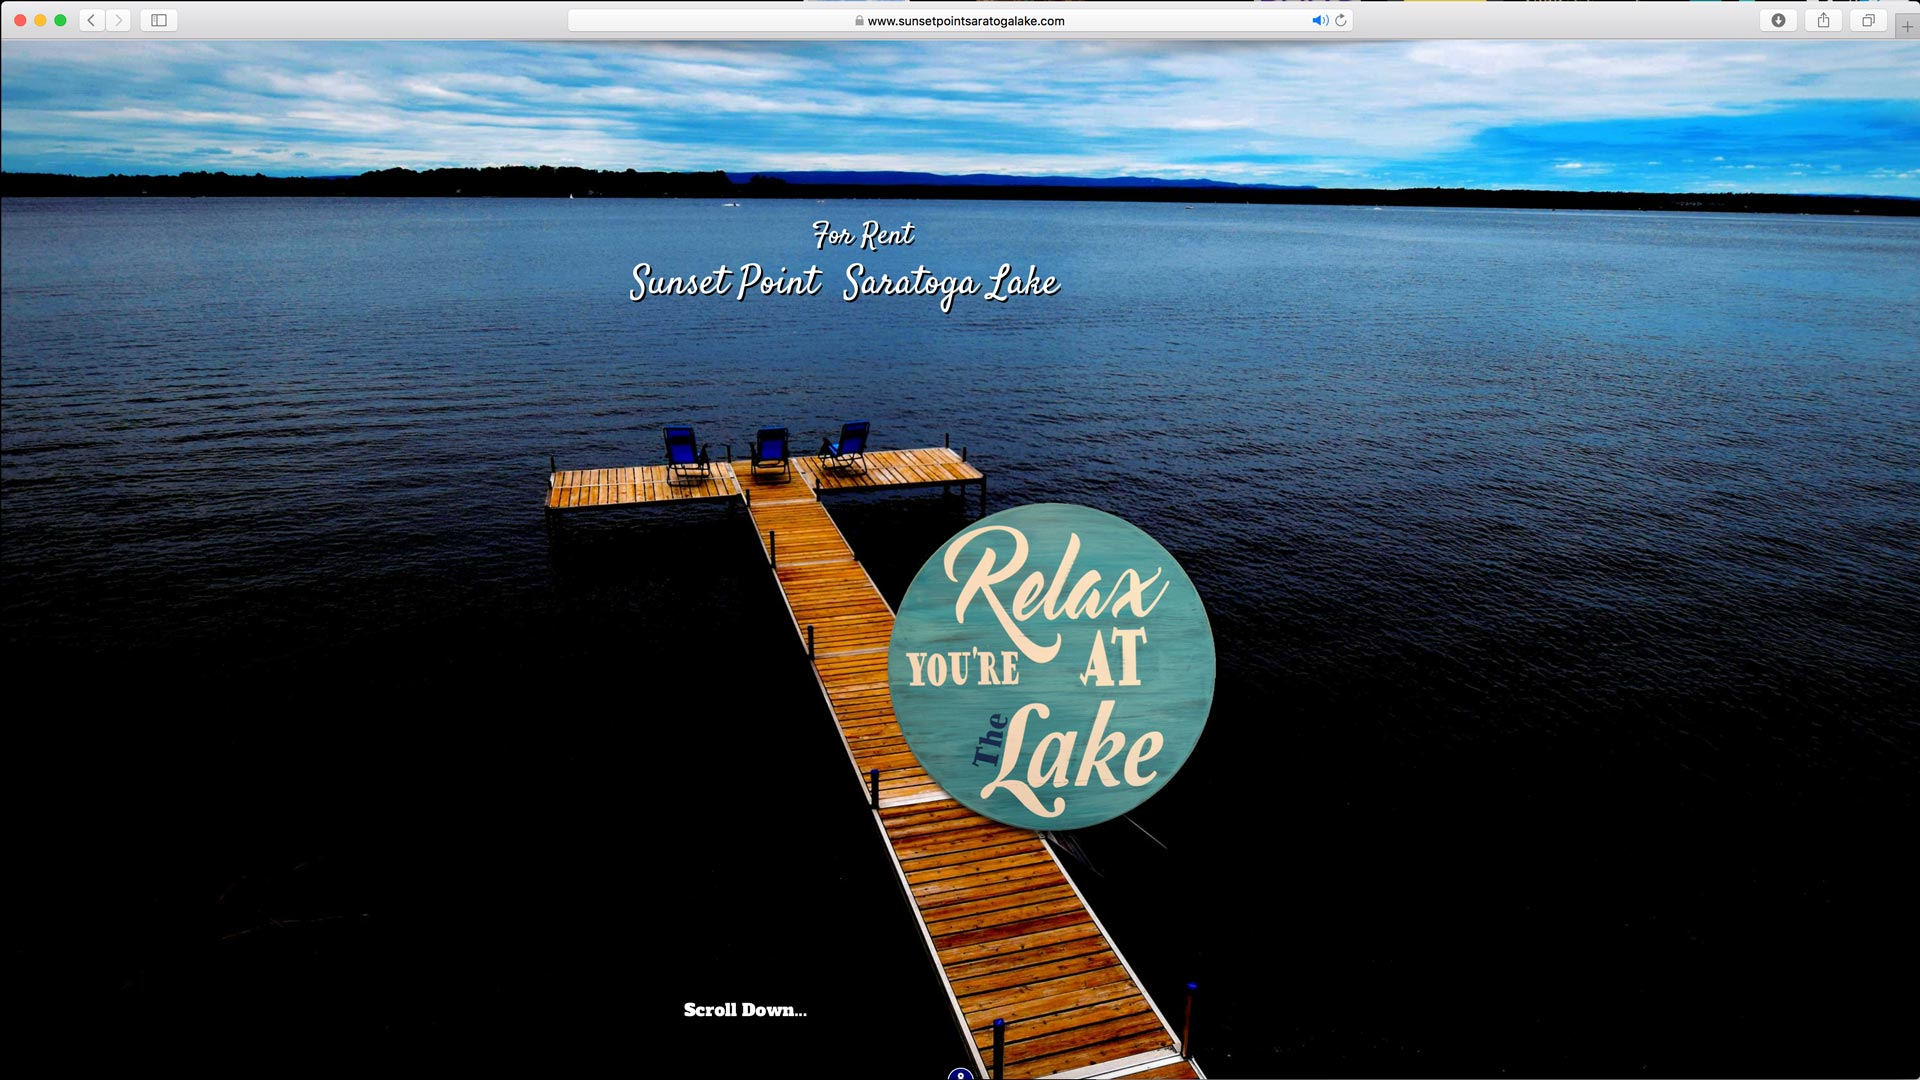 Sunset Point Saratoga Lake :: Microsite Design, Aerial and Traditional Photography